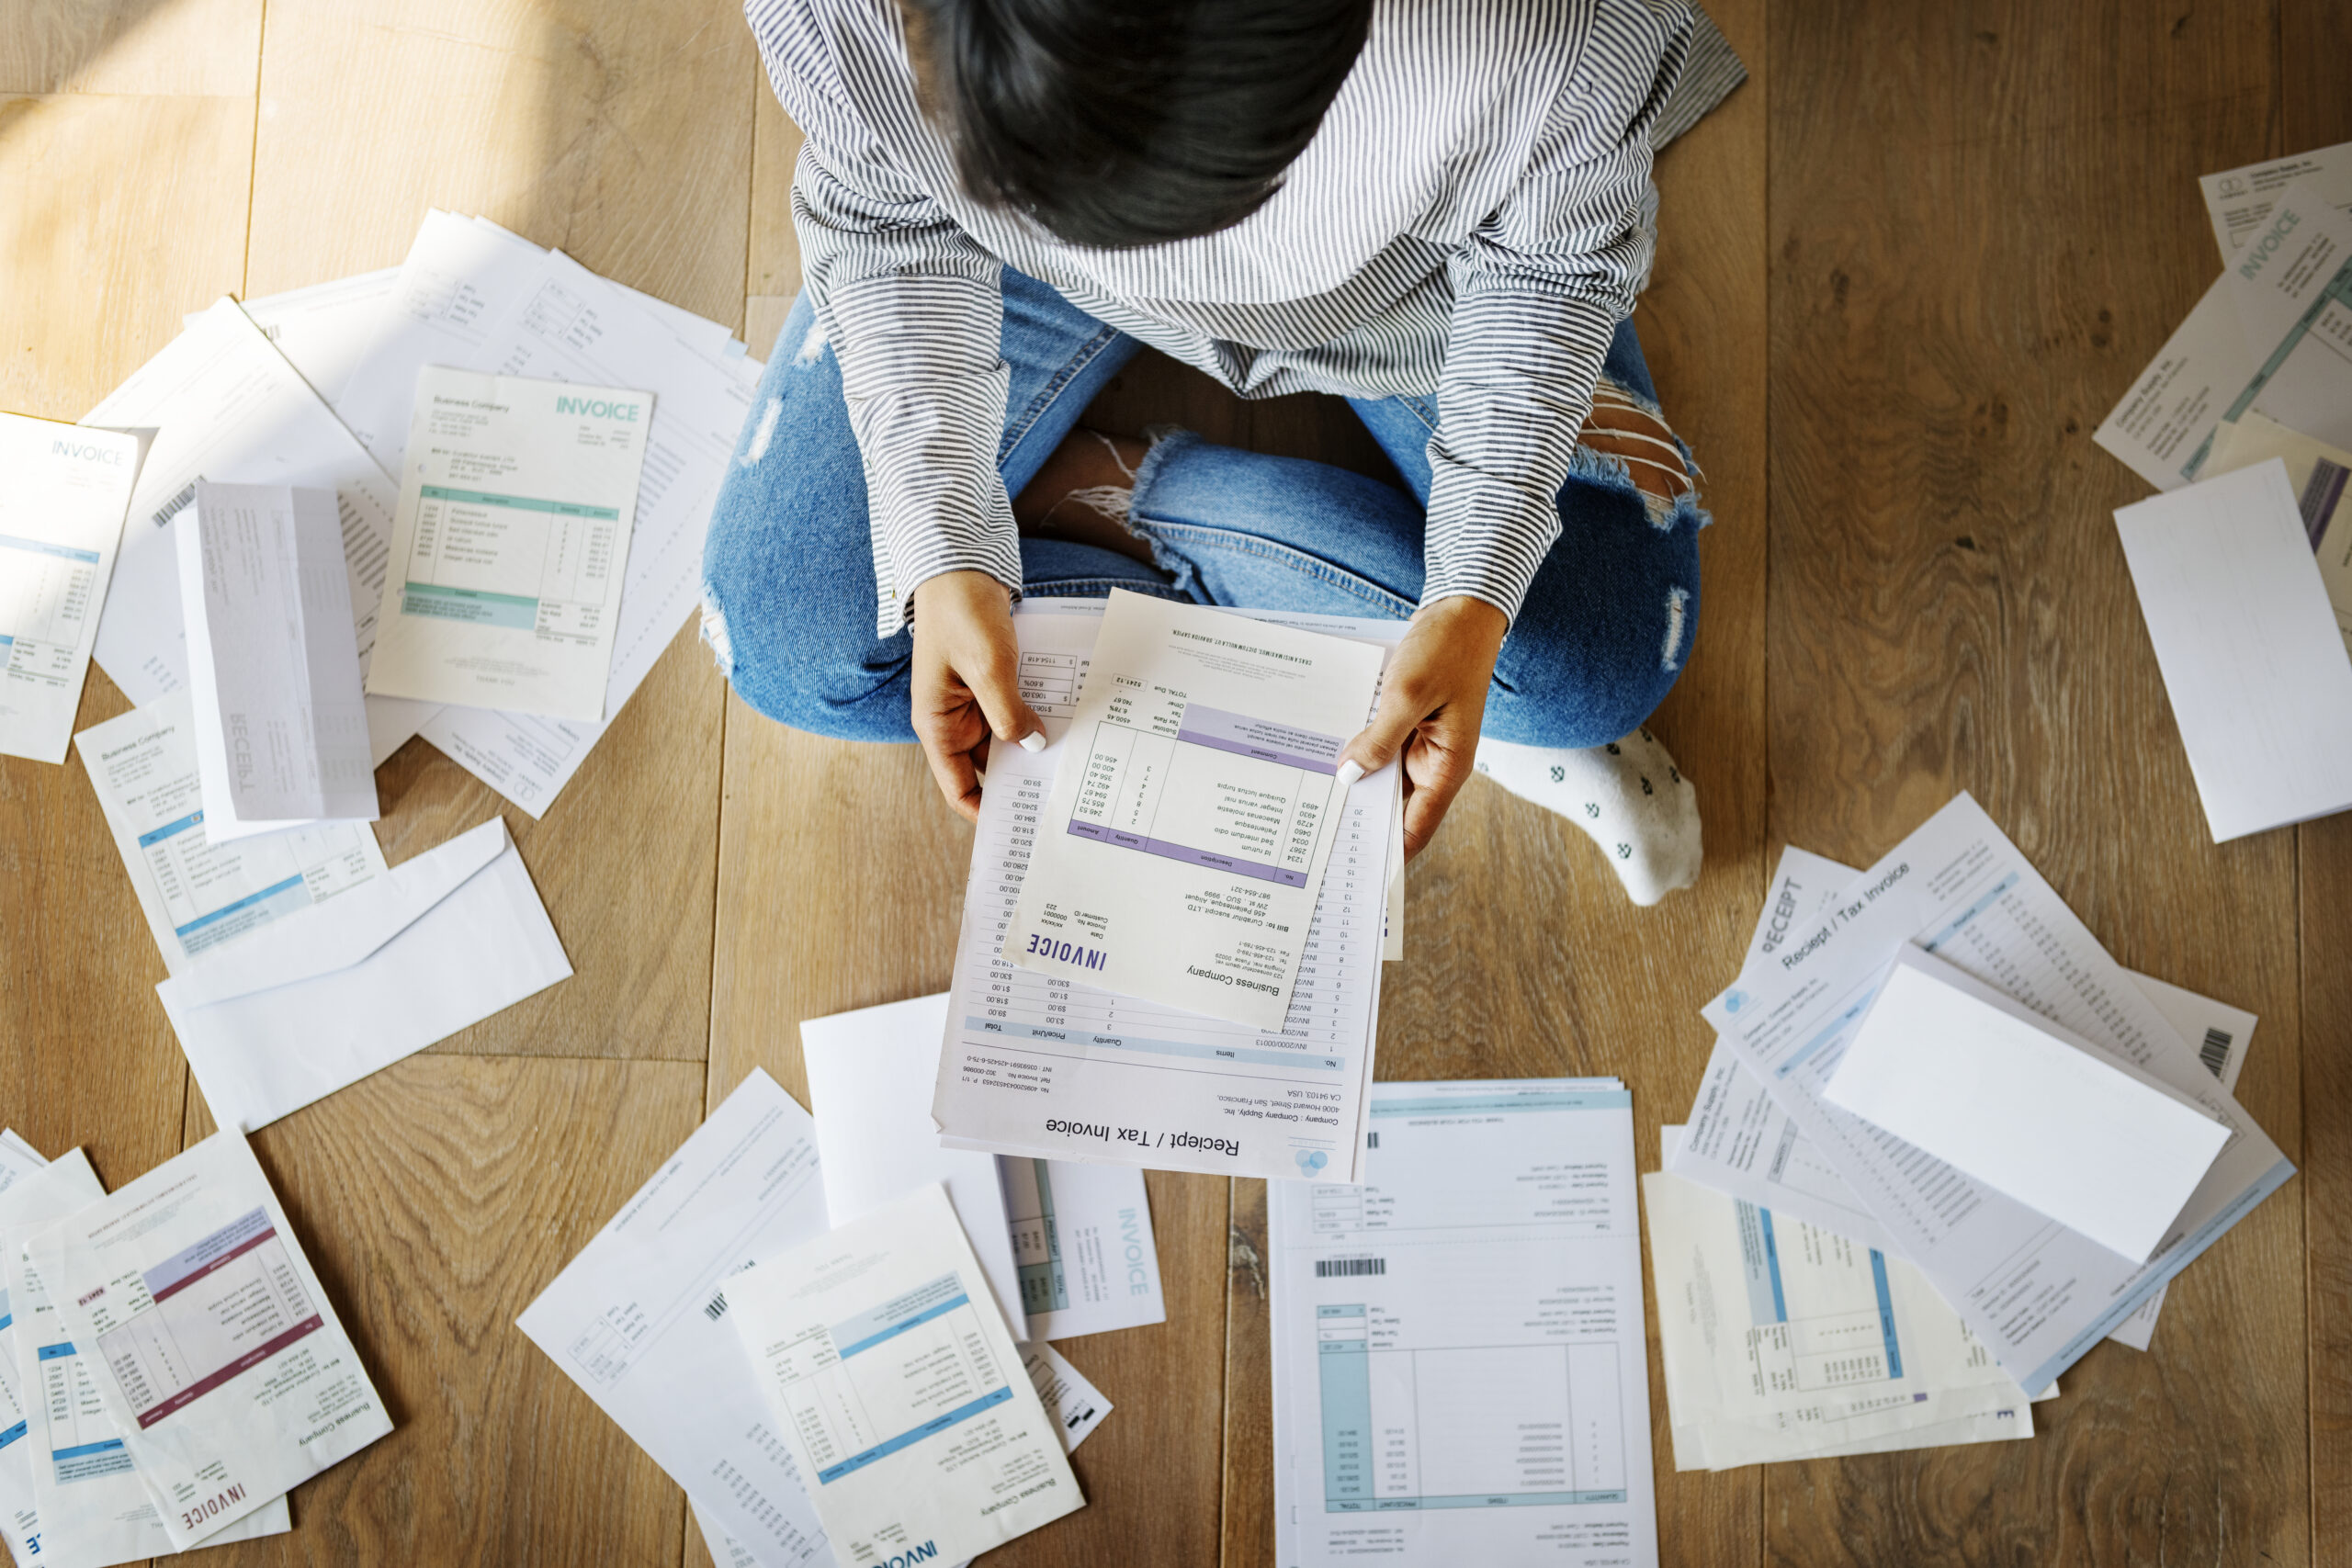 Pandemic impact on mental health prompts UK employees to improve finances